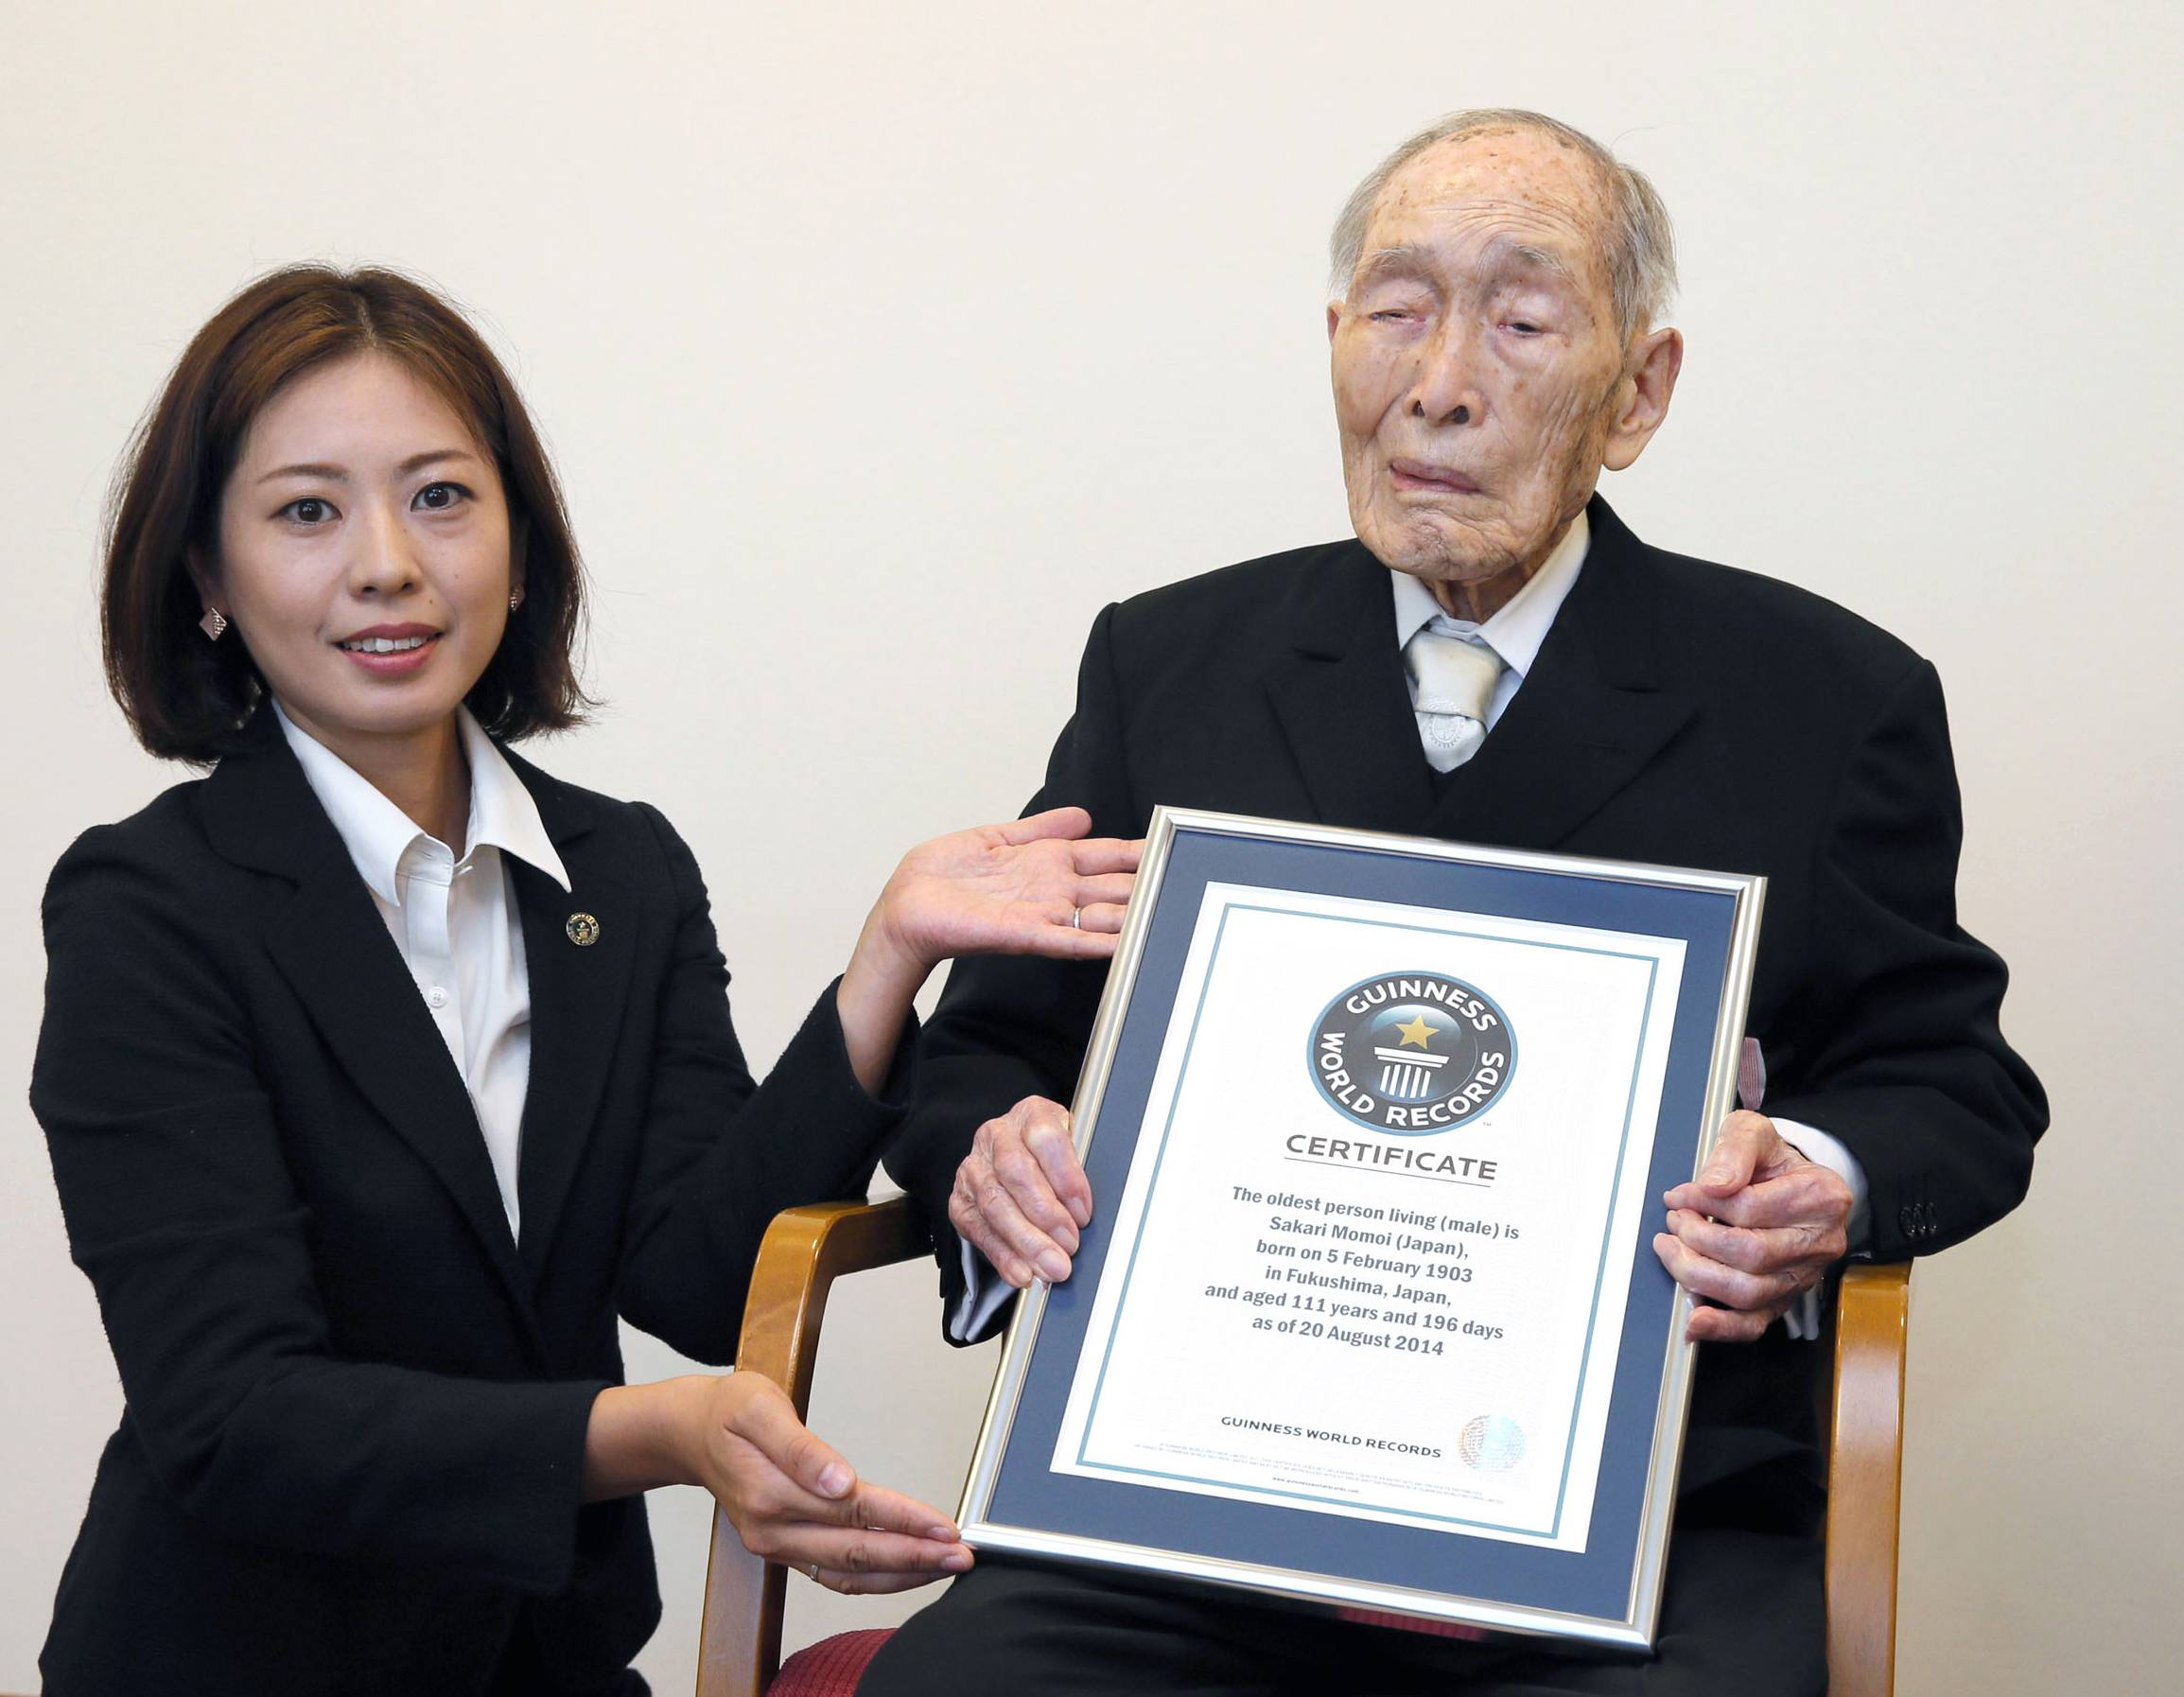 Sakari Momoi, a 111-year-old Japanese retired educator, was recognized as the world's oldest living man on Wednesday, succeeding Alexander Imich of New York, who died in April at the age of 111 years, 164 days.